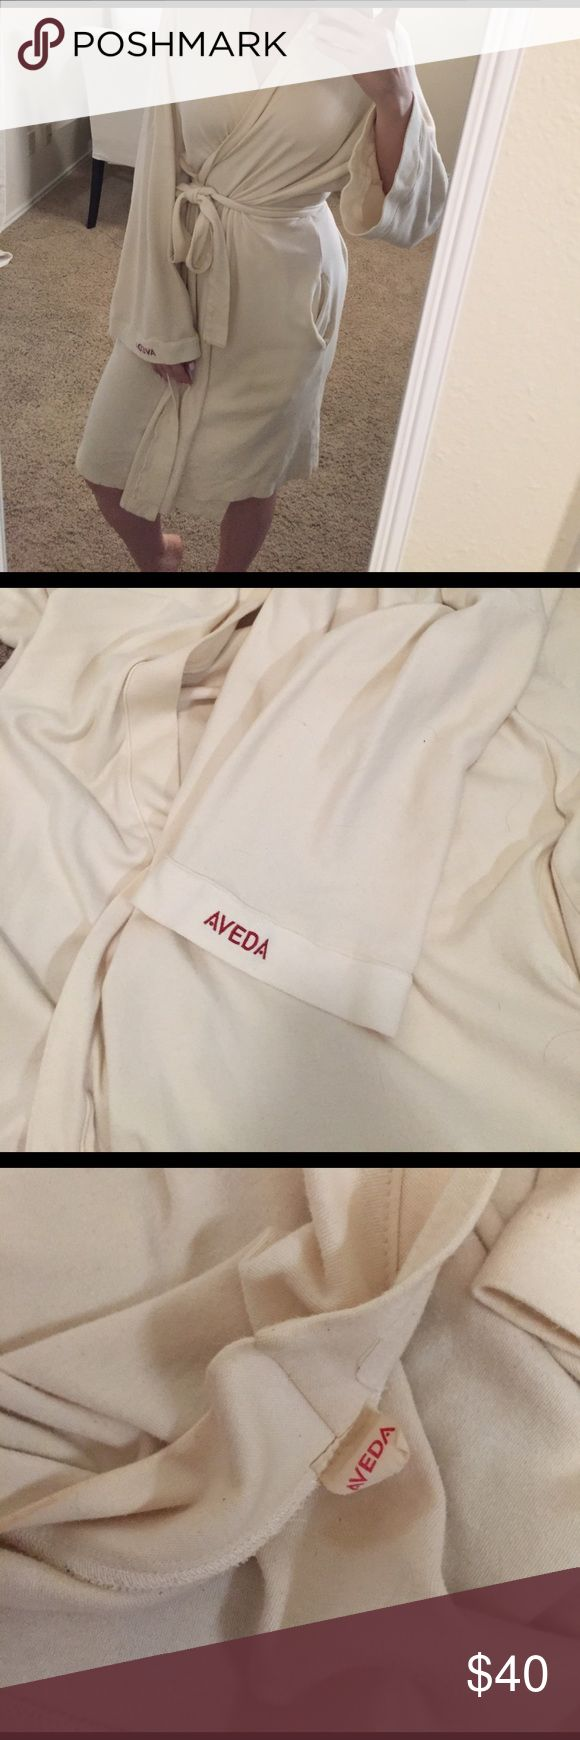 Aveda® 100% Organic Cotton Spa Robe Kimono style wrap/tie Spa robe from an Aveda Spa that I worked at. This was given to me as a gift. There are signs of wear but no holes or rips, and heavy quality cotton means this robe has many years of life left. Incredibly soft. I have too many robes, that's why I am letting this one go.One size fits most. This retailed for $100. Aveda Intimates & Sleepwear Robes